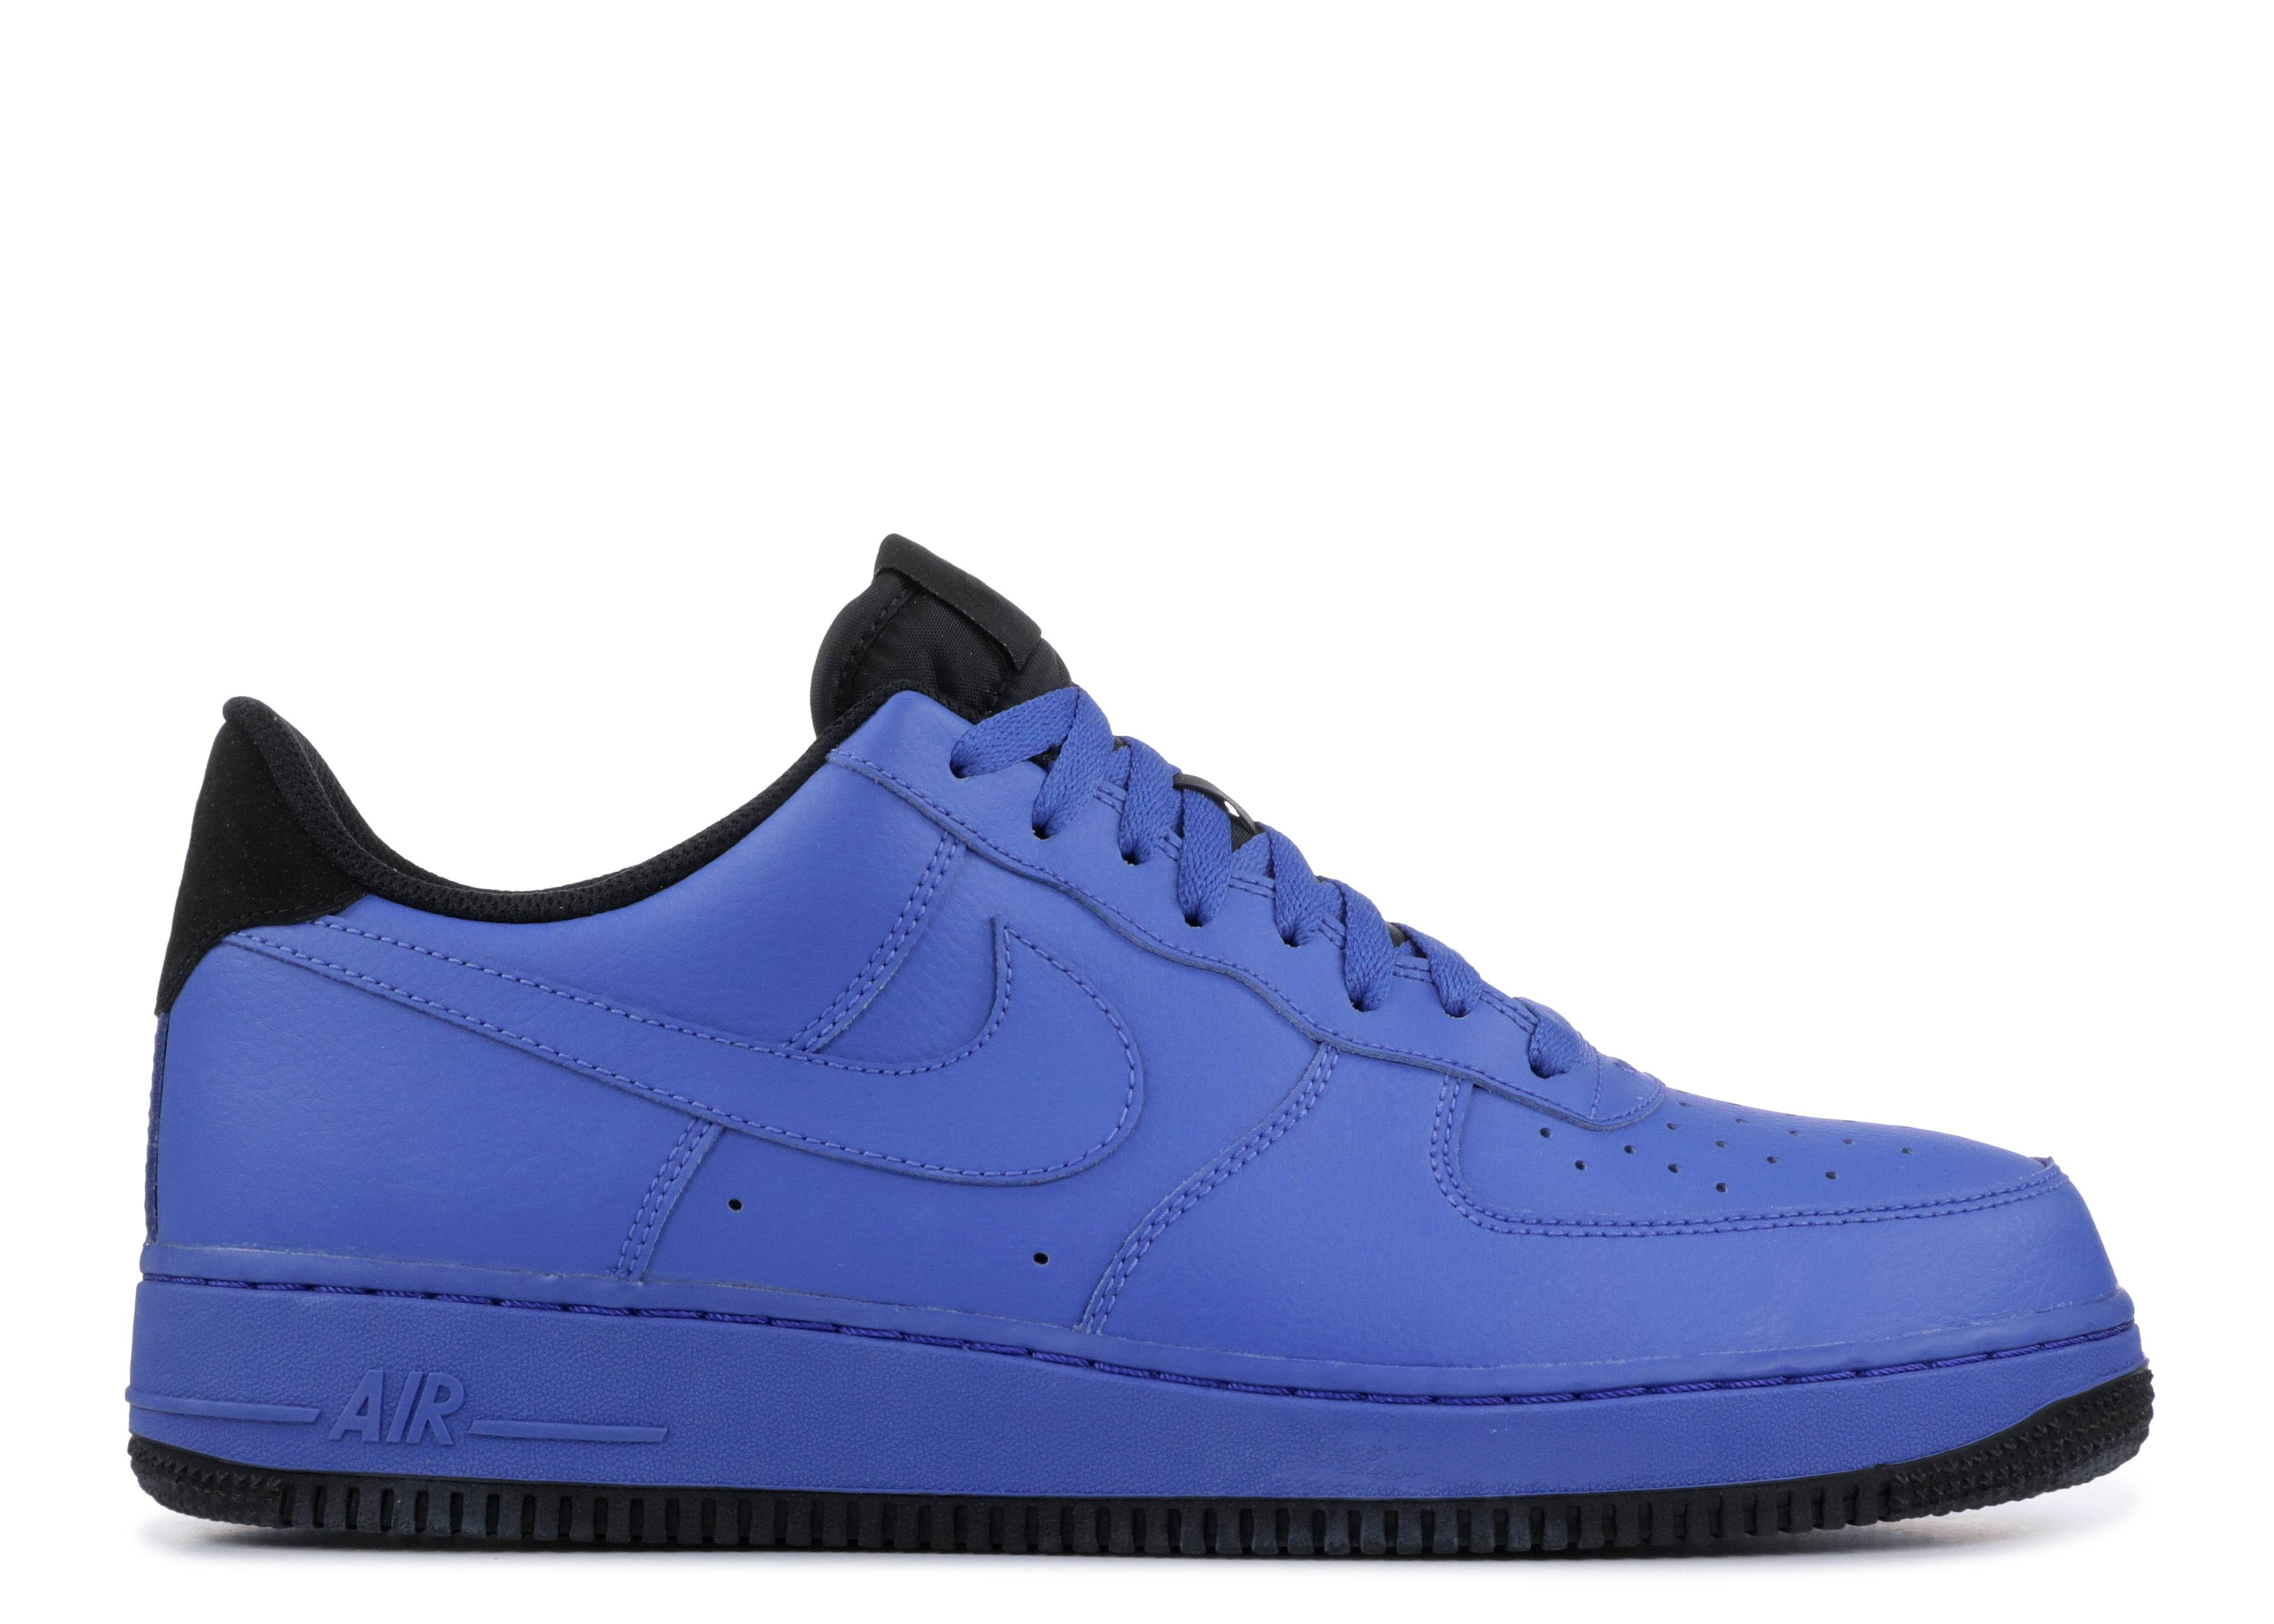 New Style Nike Air Force 1 07 Lv8 Dark Mushroom Blue 718152 205 Men's Casual Shoes Sneakers 718152 205a